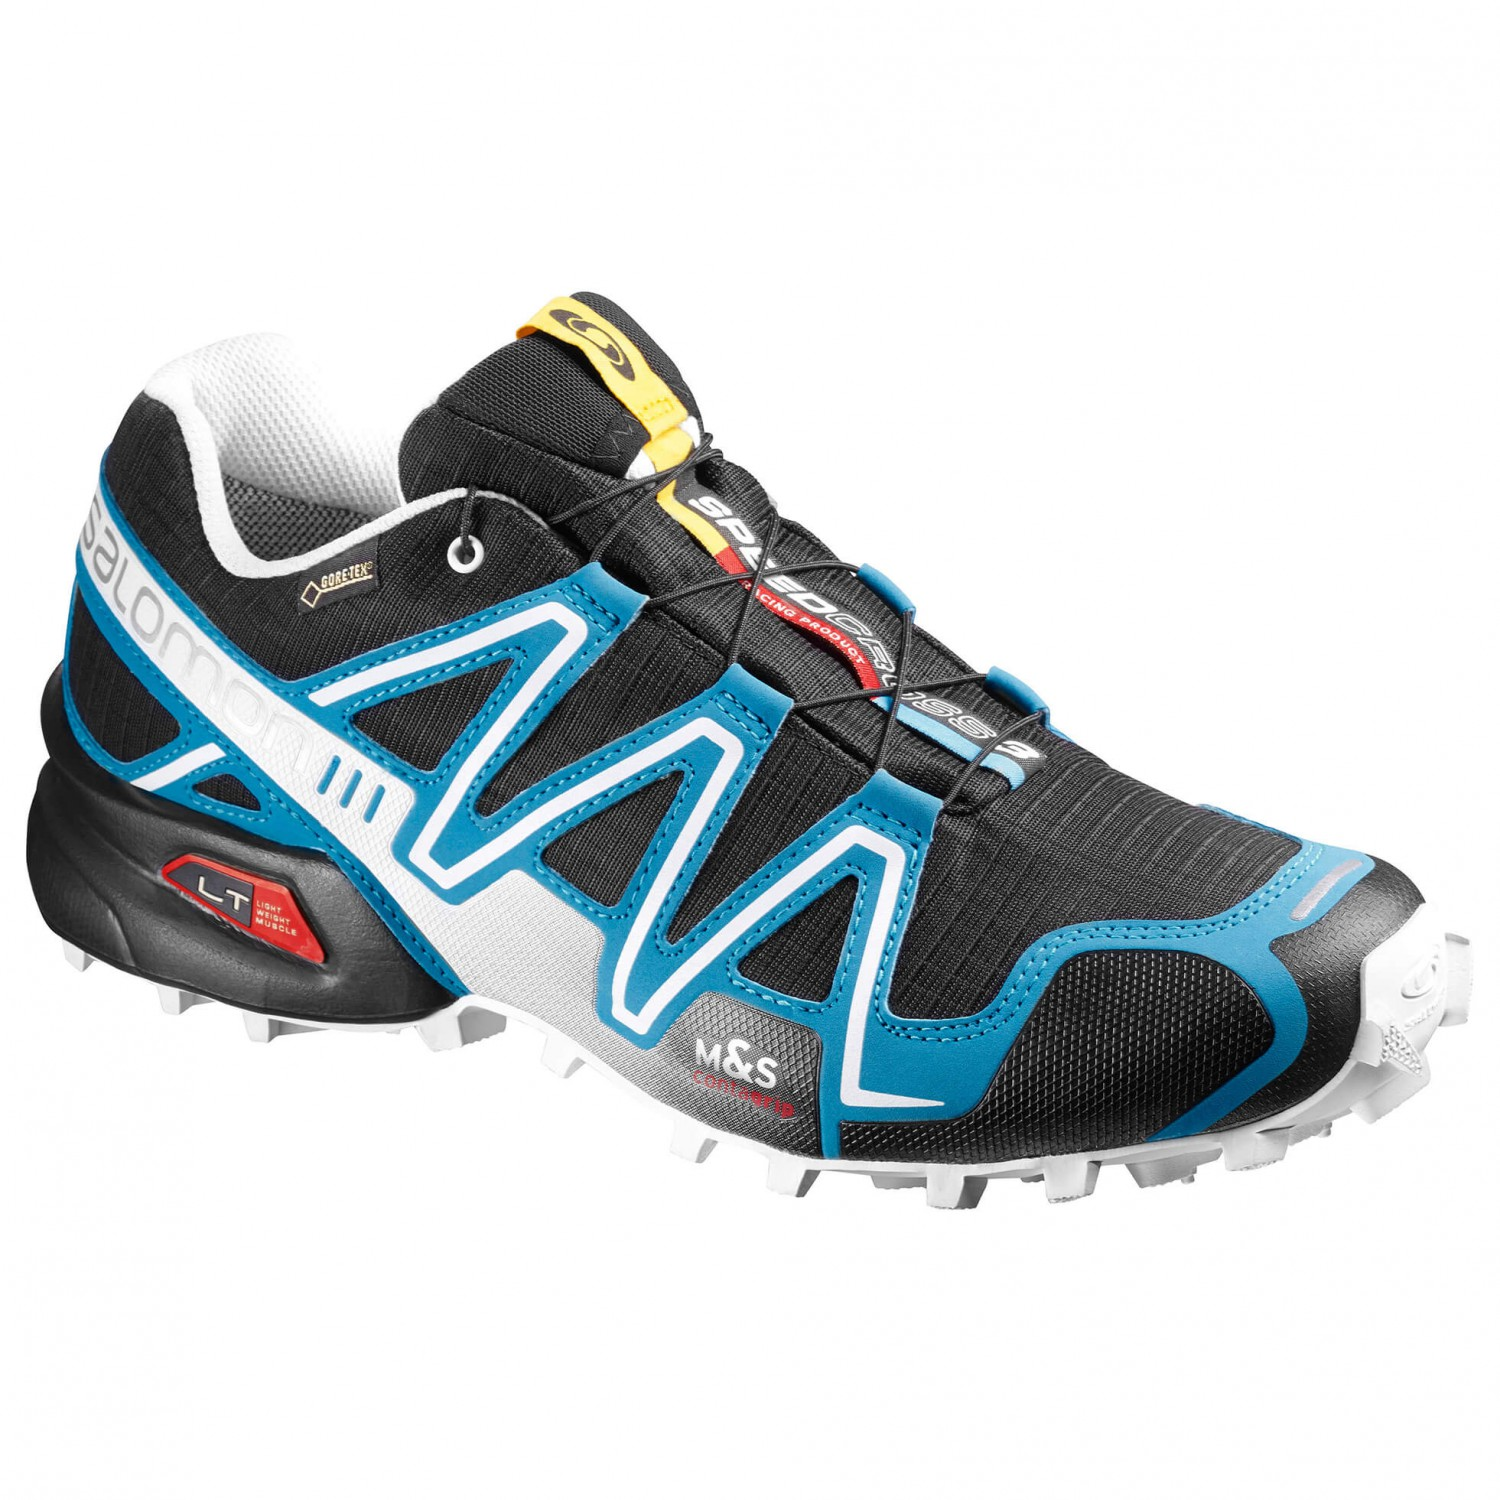 01a983ff3d Salomon Speedcross 3 GTX - Zapatillas de trail running Hombre ...